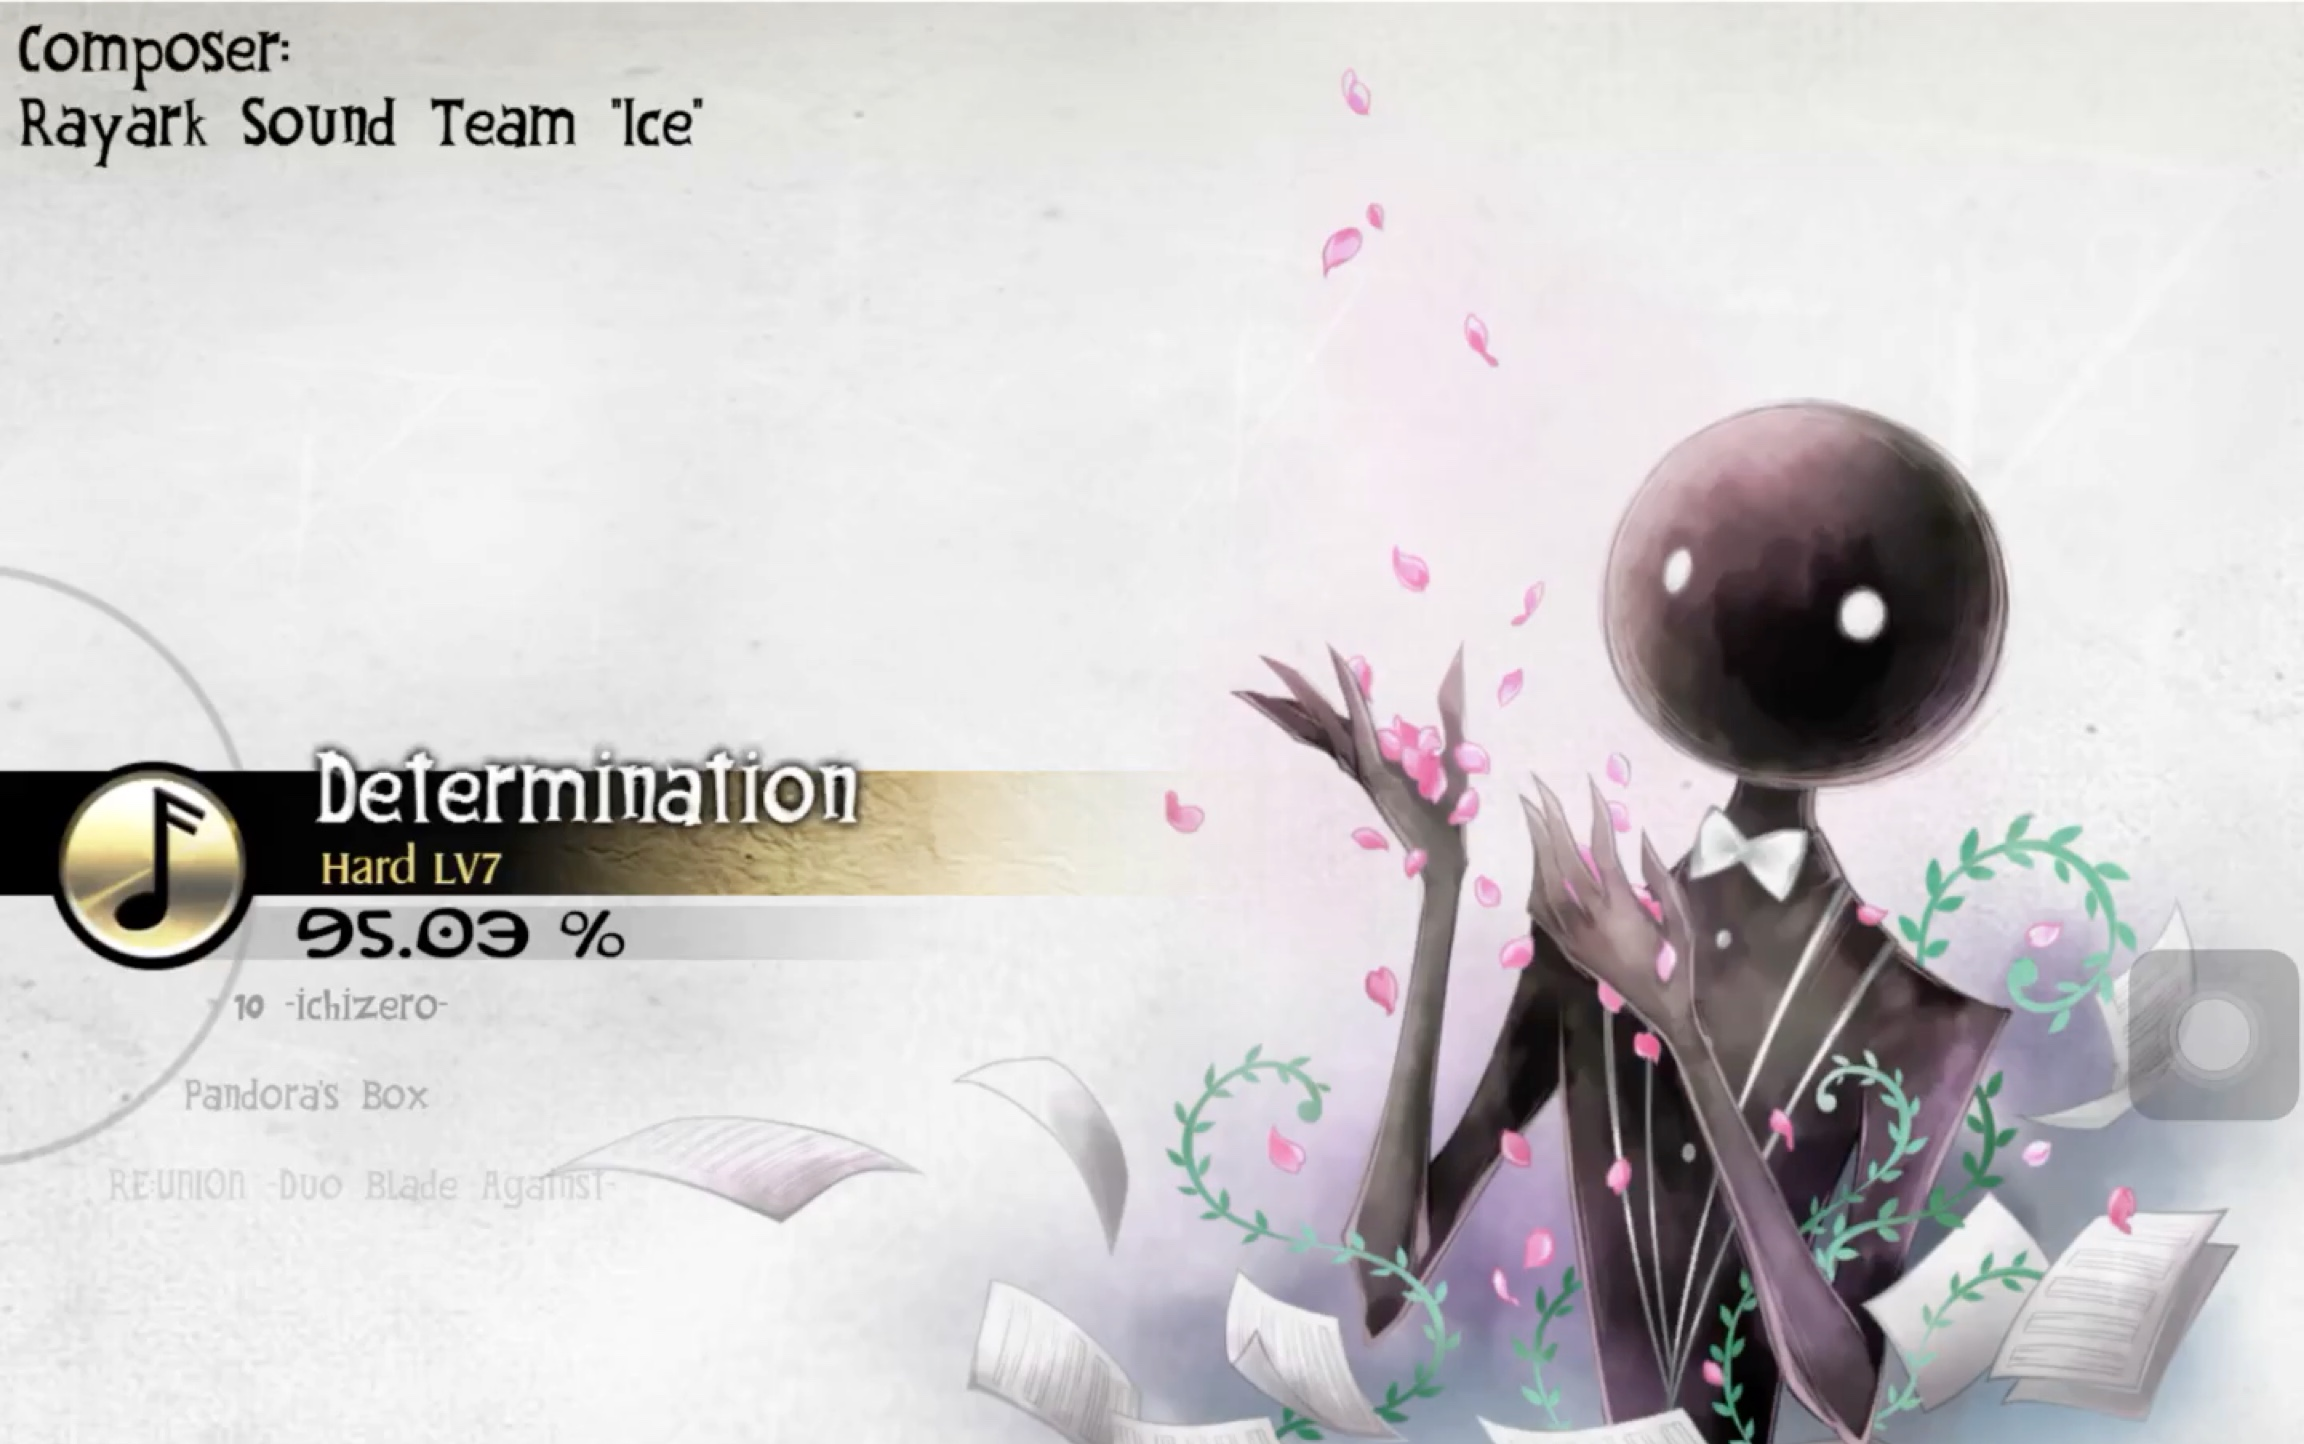 Detemination deemo